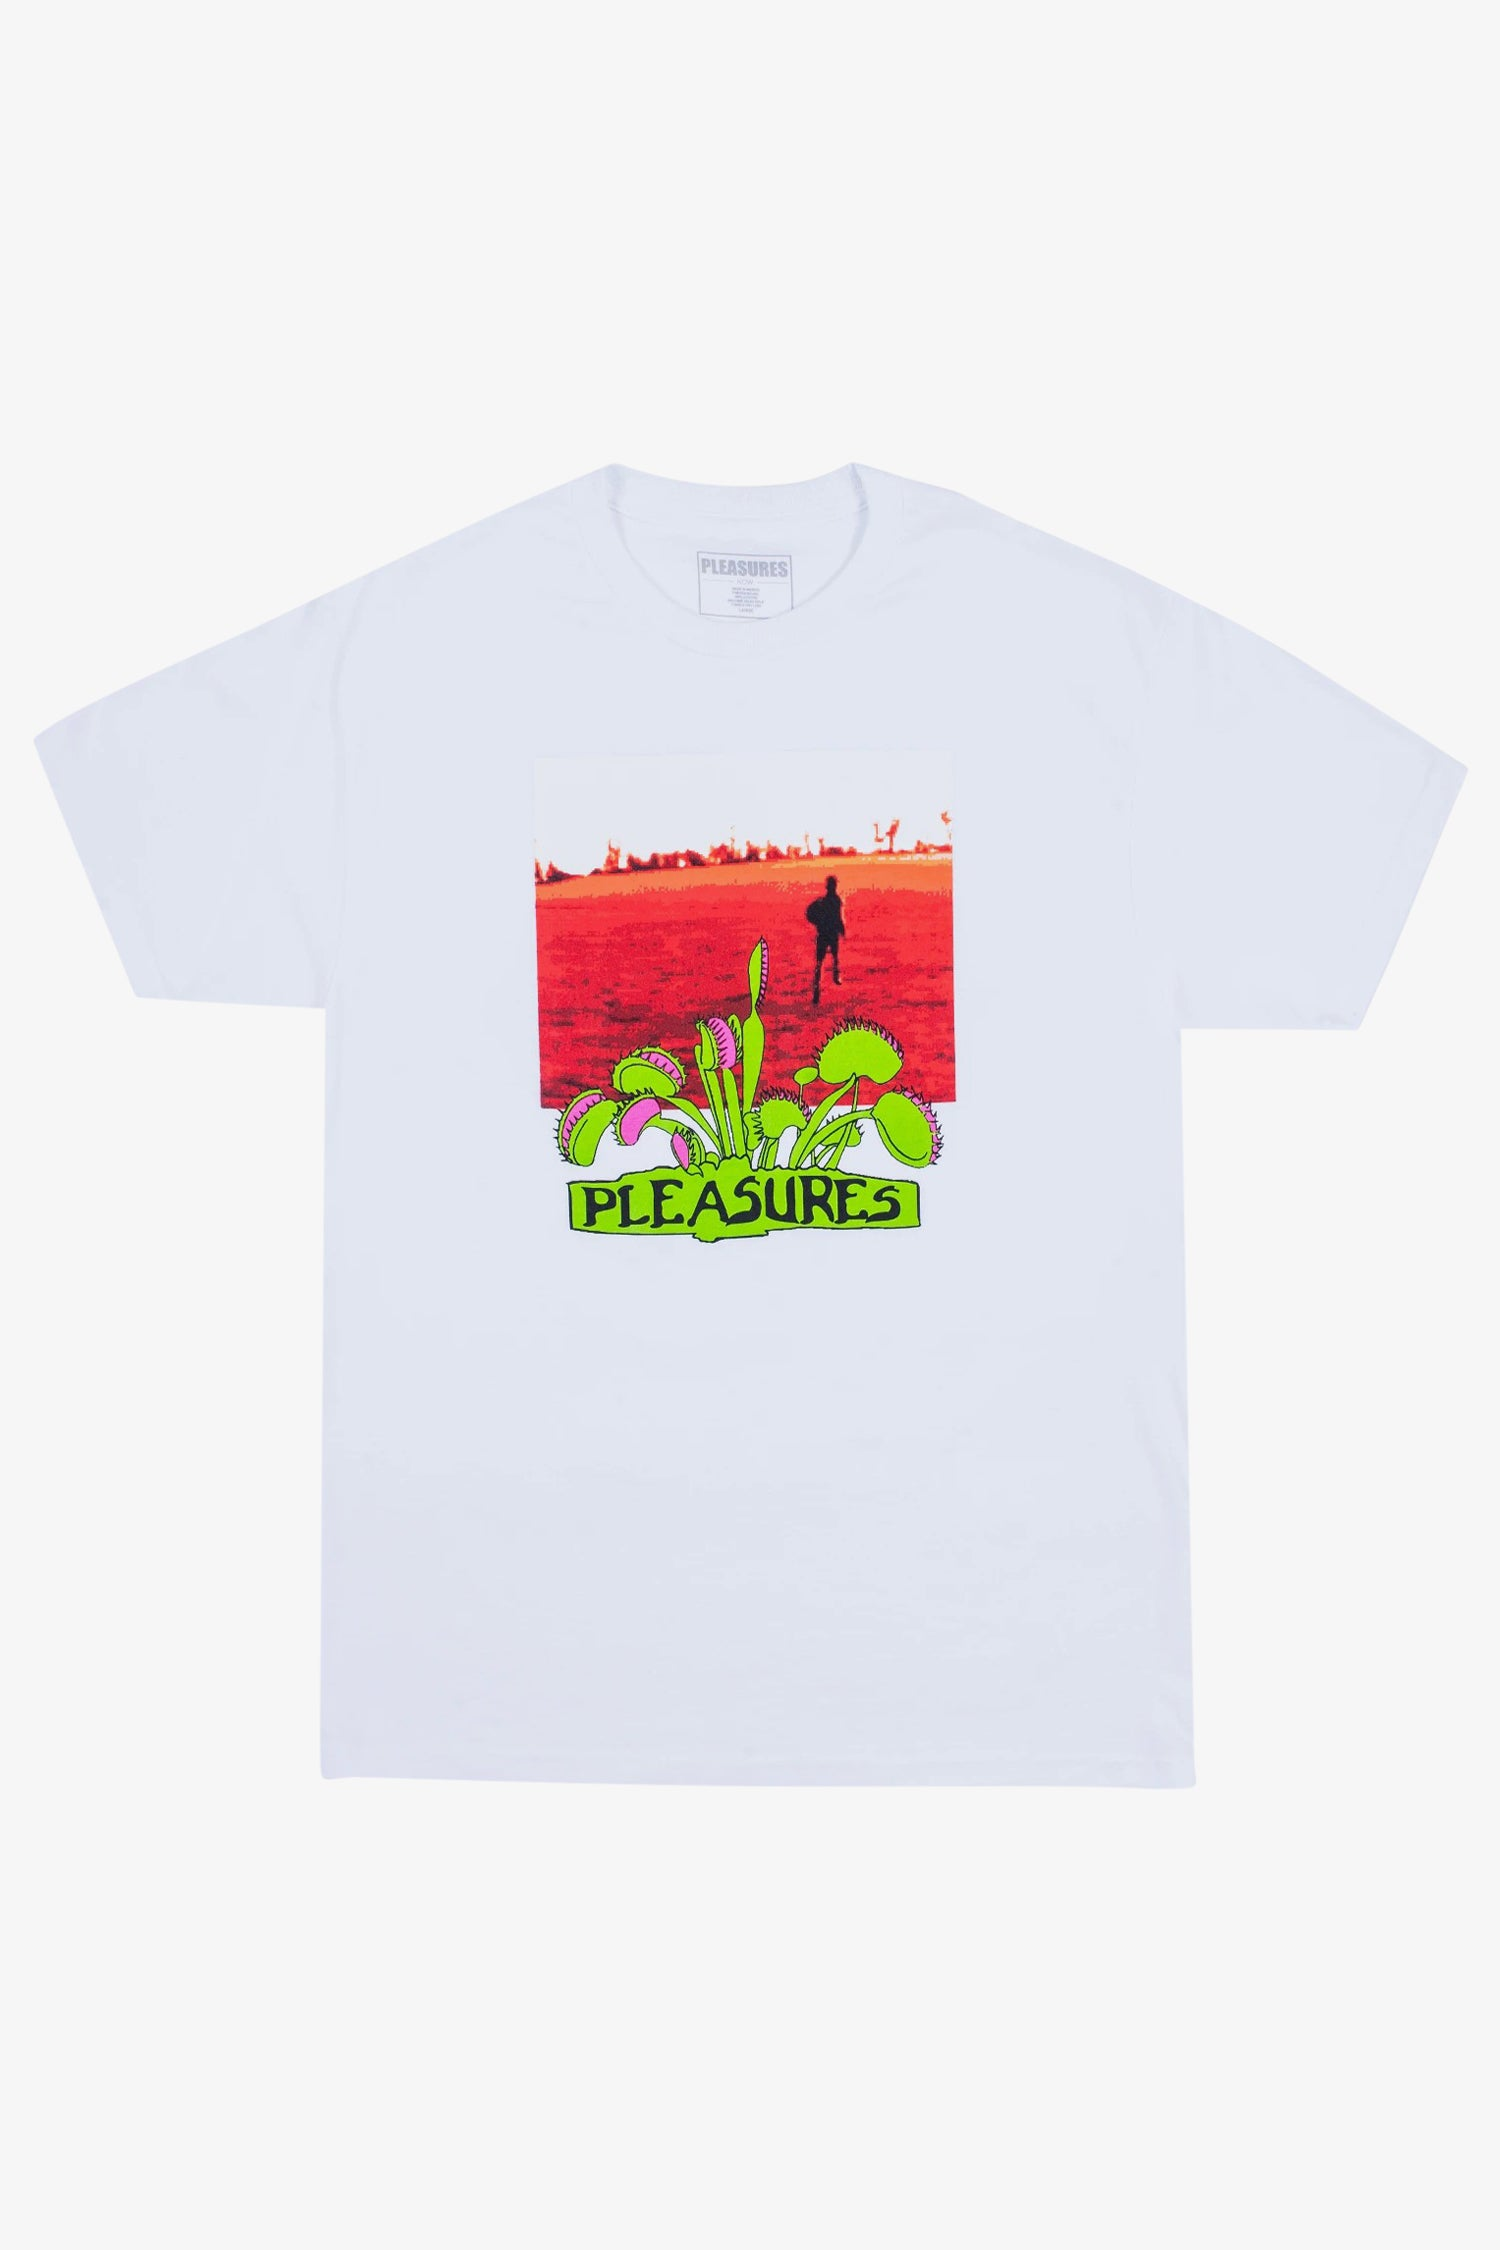 Selectshop FRAME - PLEASURES Trapped T-Shirt T-Shirt Dubai